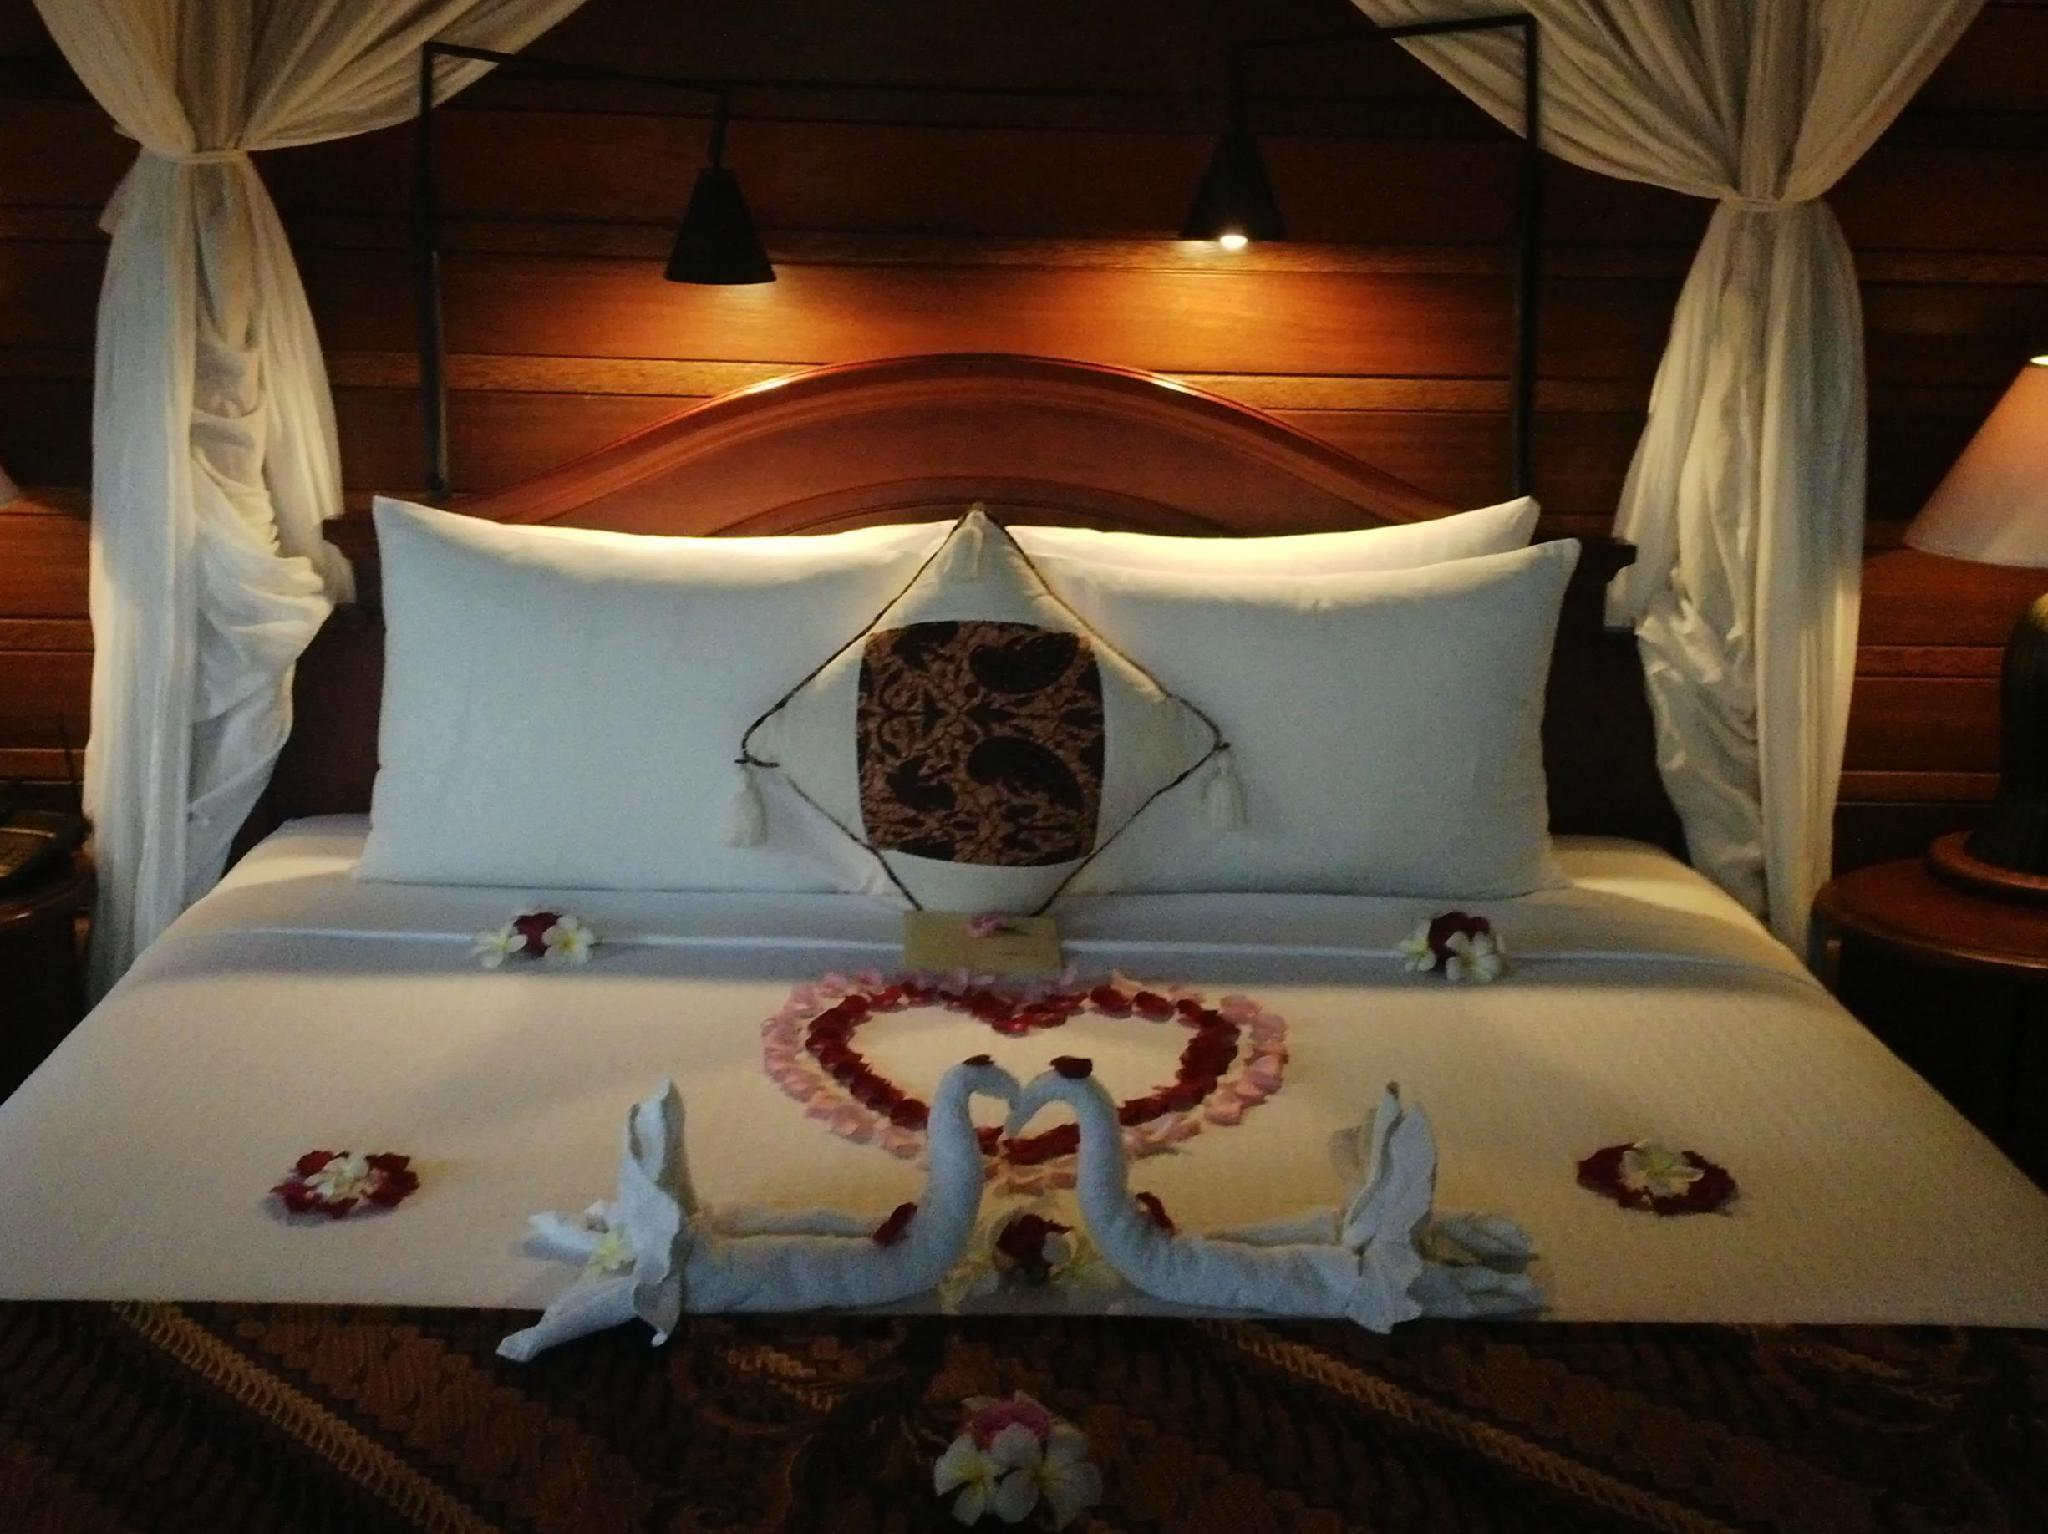 Honeymoon Package - One Bedroom Villa with Private Pool